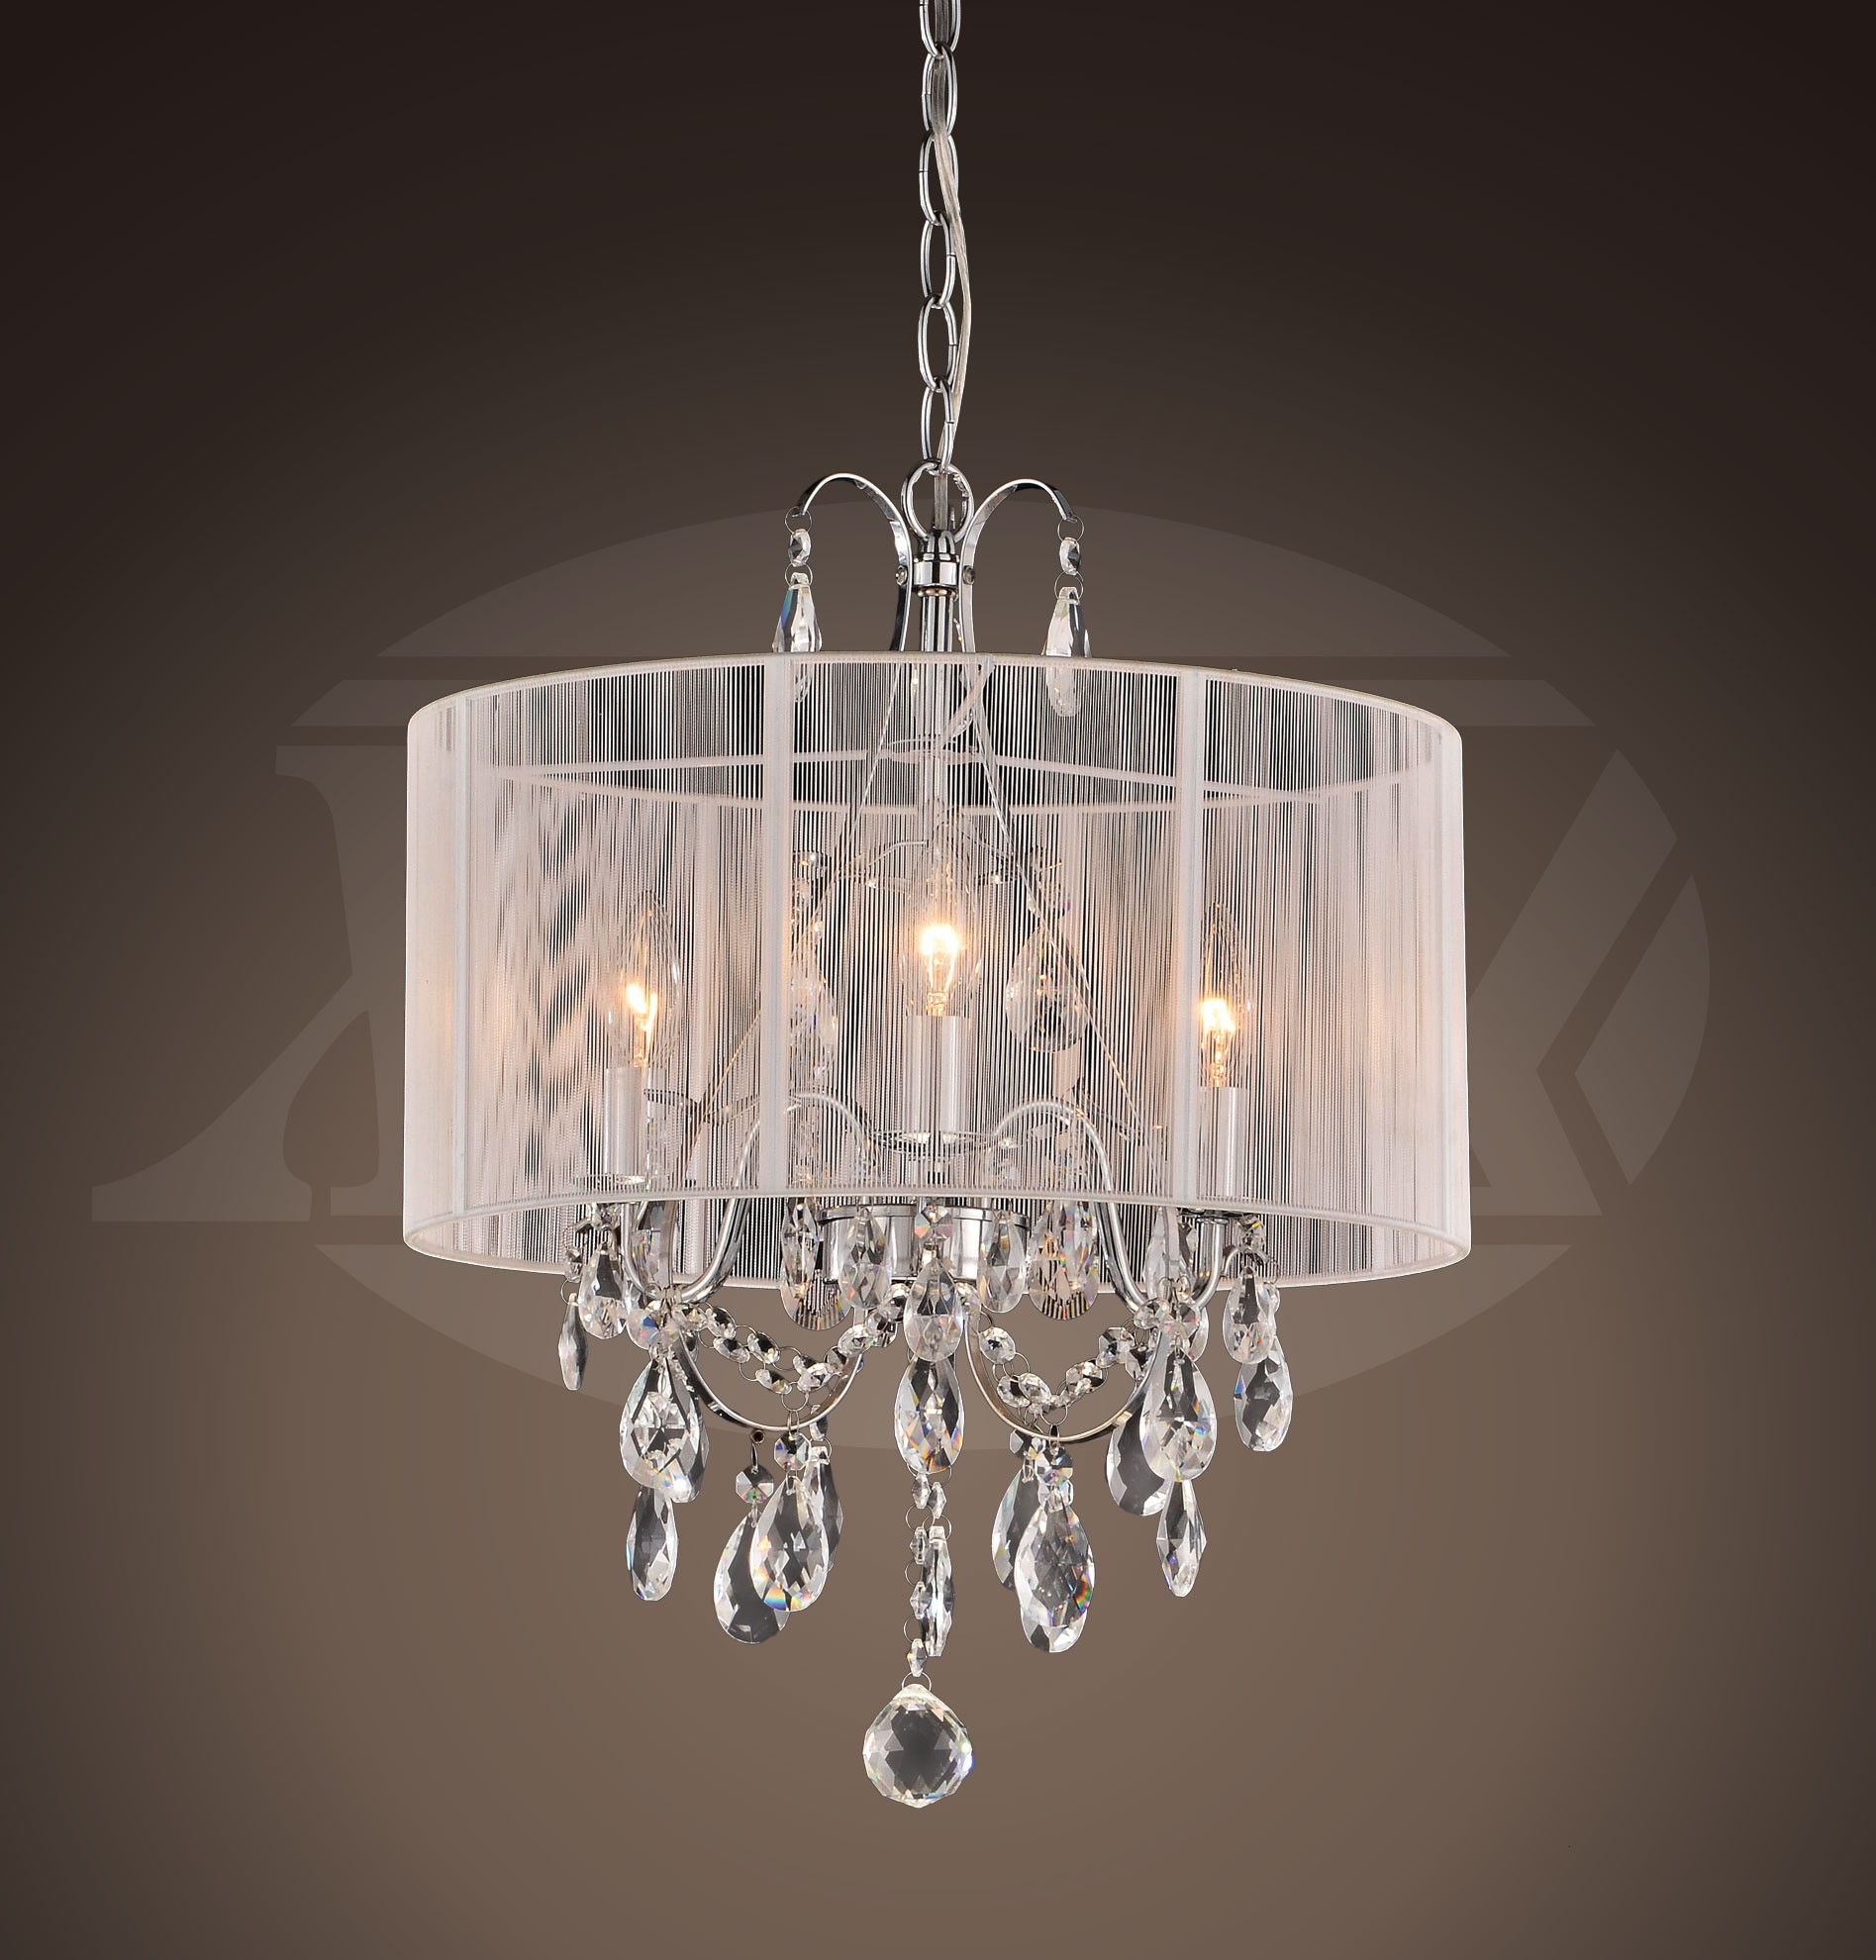 Gina White Cotton Thread And Chrome Maury Crystal Chandelier 16 W X 21